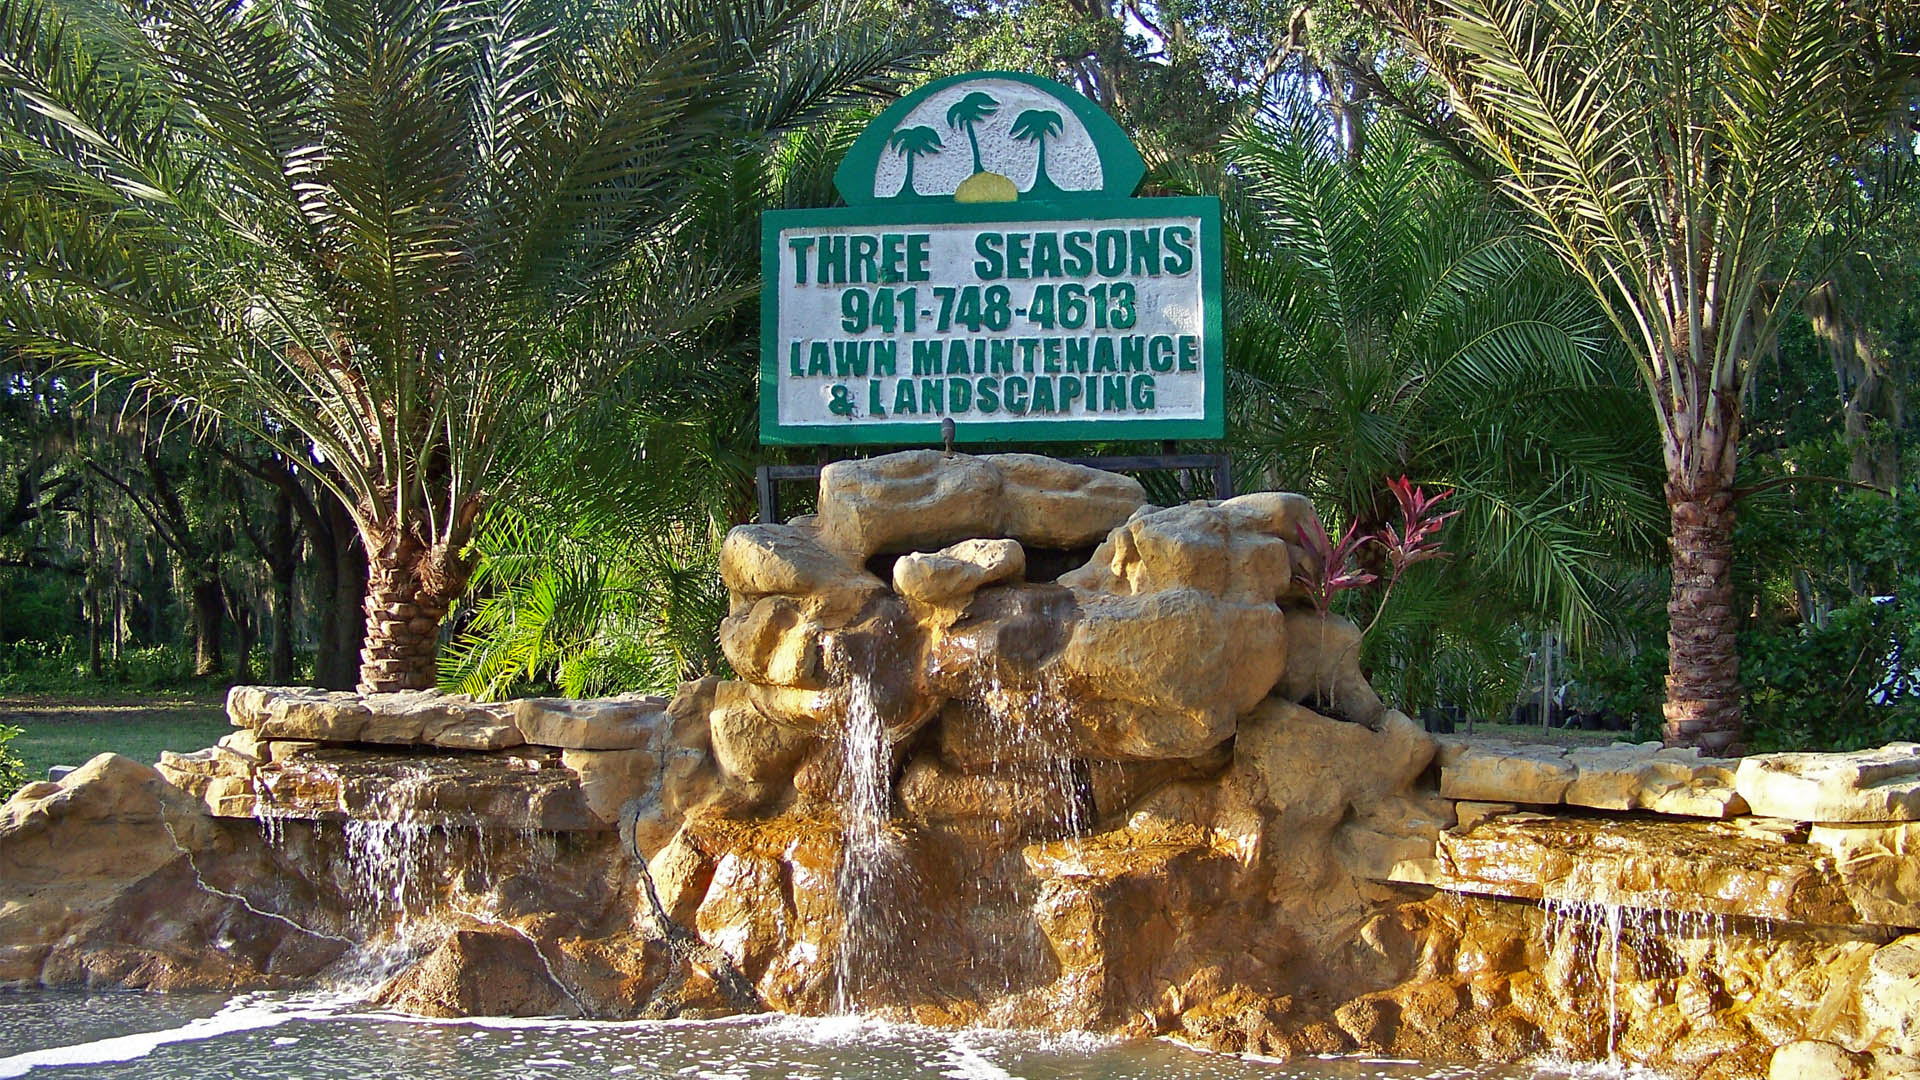 Three Seasons Lawn Maintenance and Landscaping Palmetto, FL.